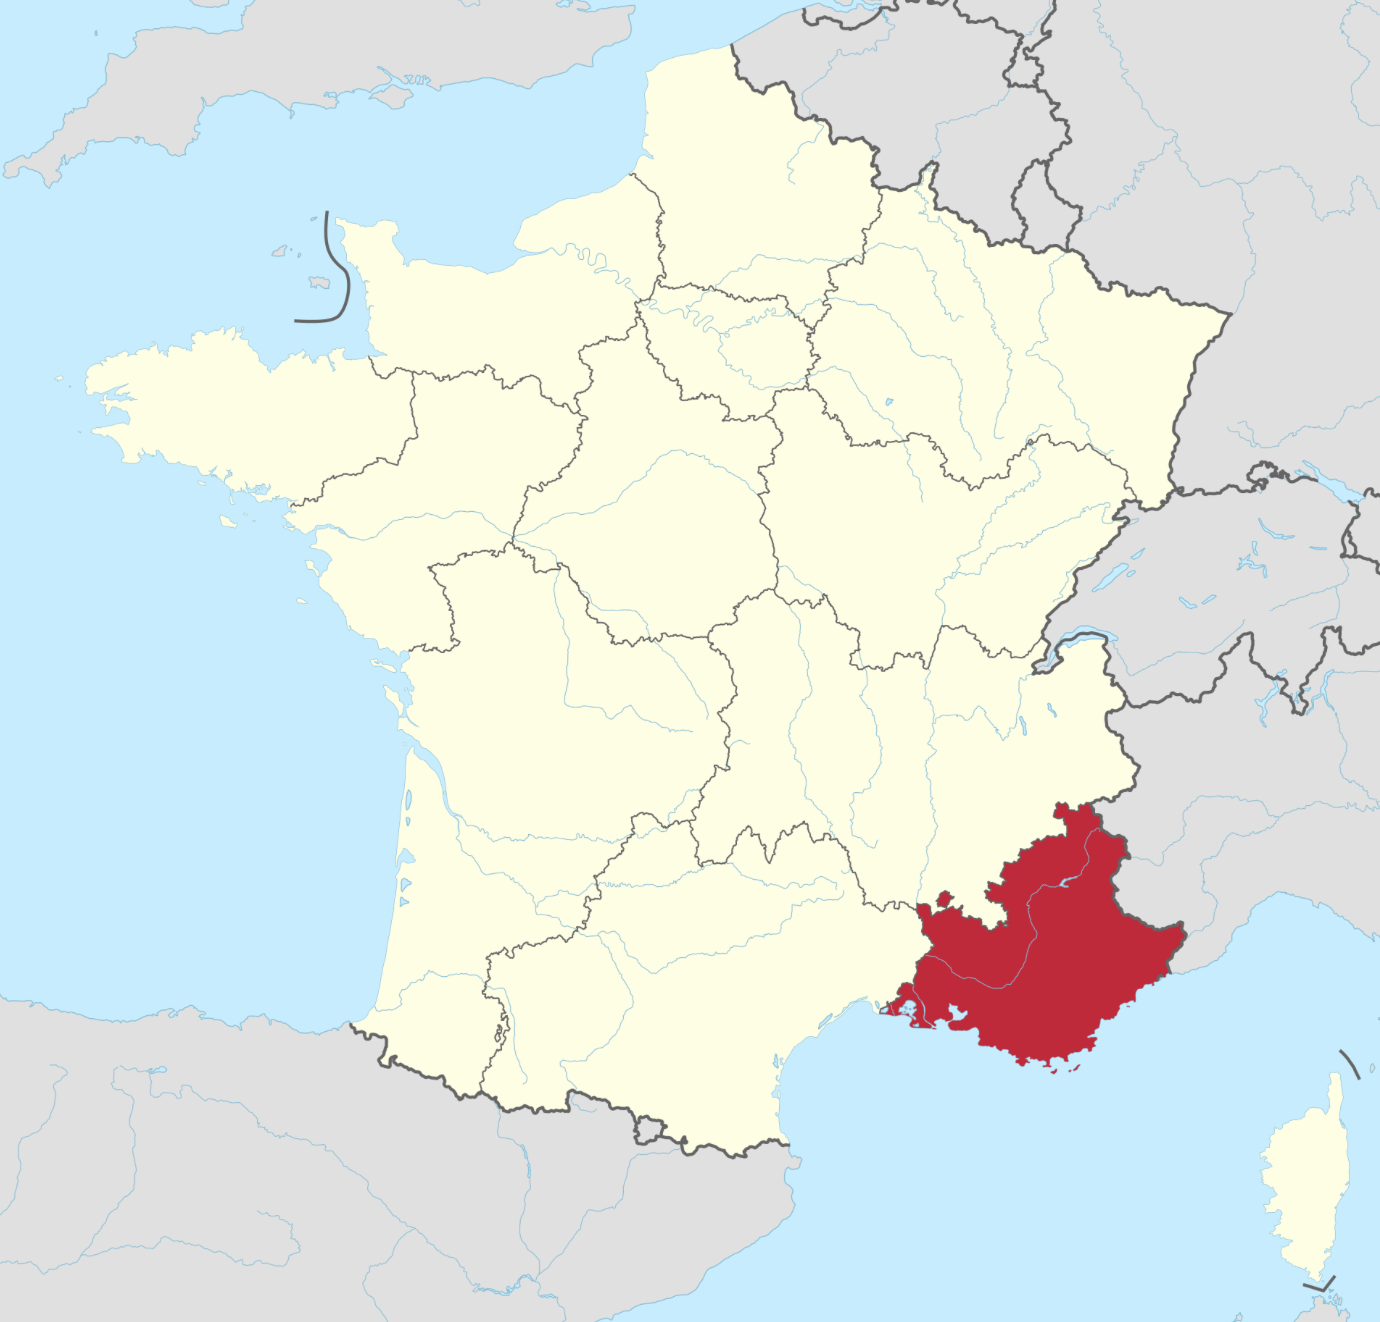 Map of Provence-Alpes-Côte d'Azur © TUBS - licence [CC BY-SA 3.0 de] from Wikimedia Commons